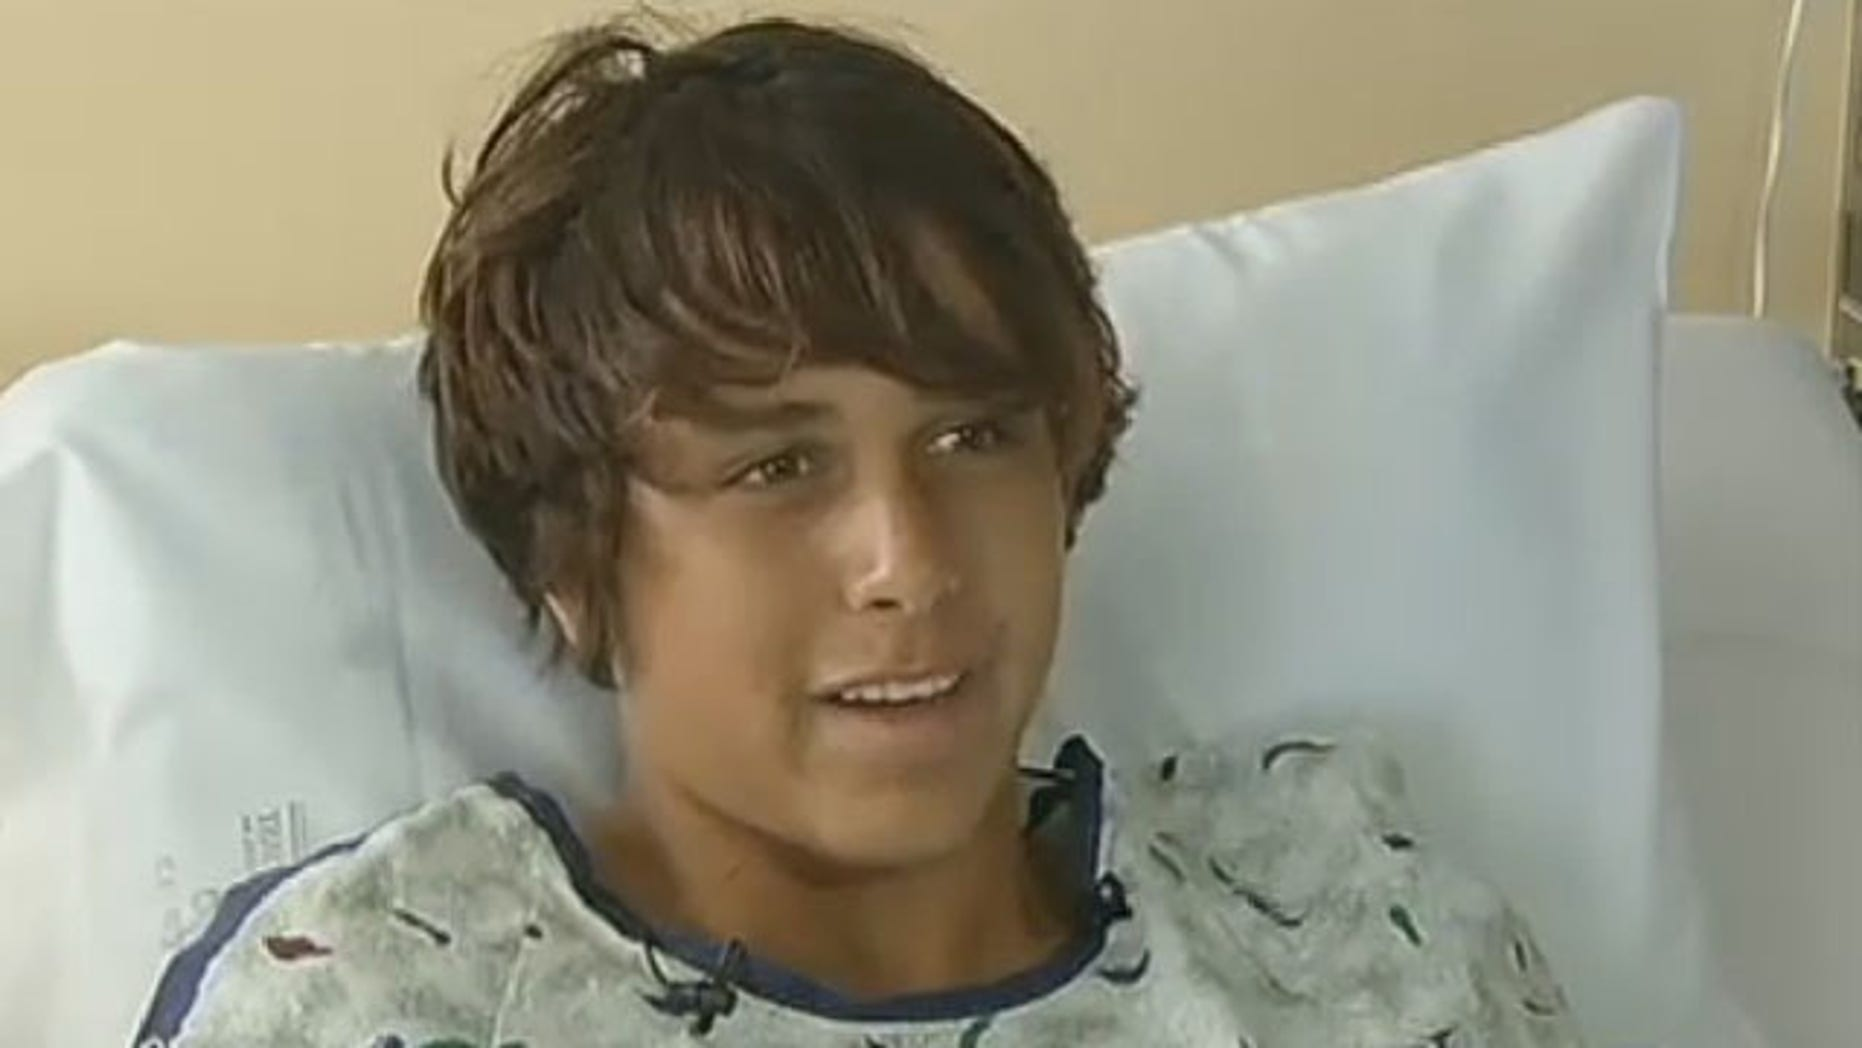 May 5, 2013: Michael Adler talks about his ordeal from his hospital bed at Holmes Regional Medical Center.